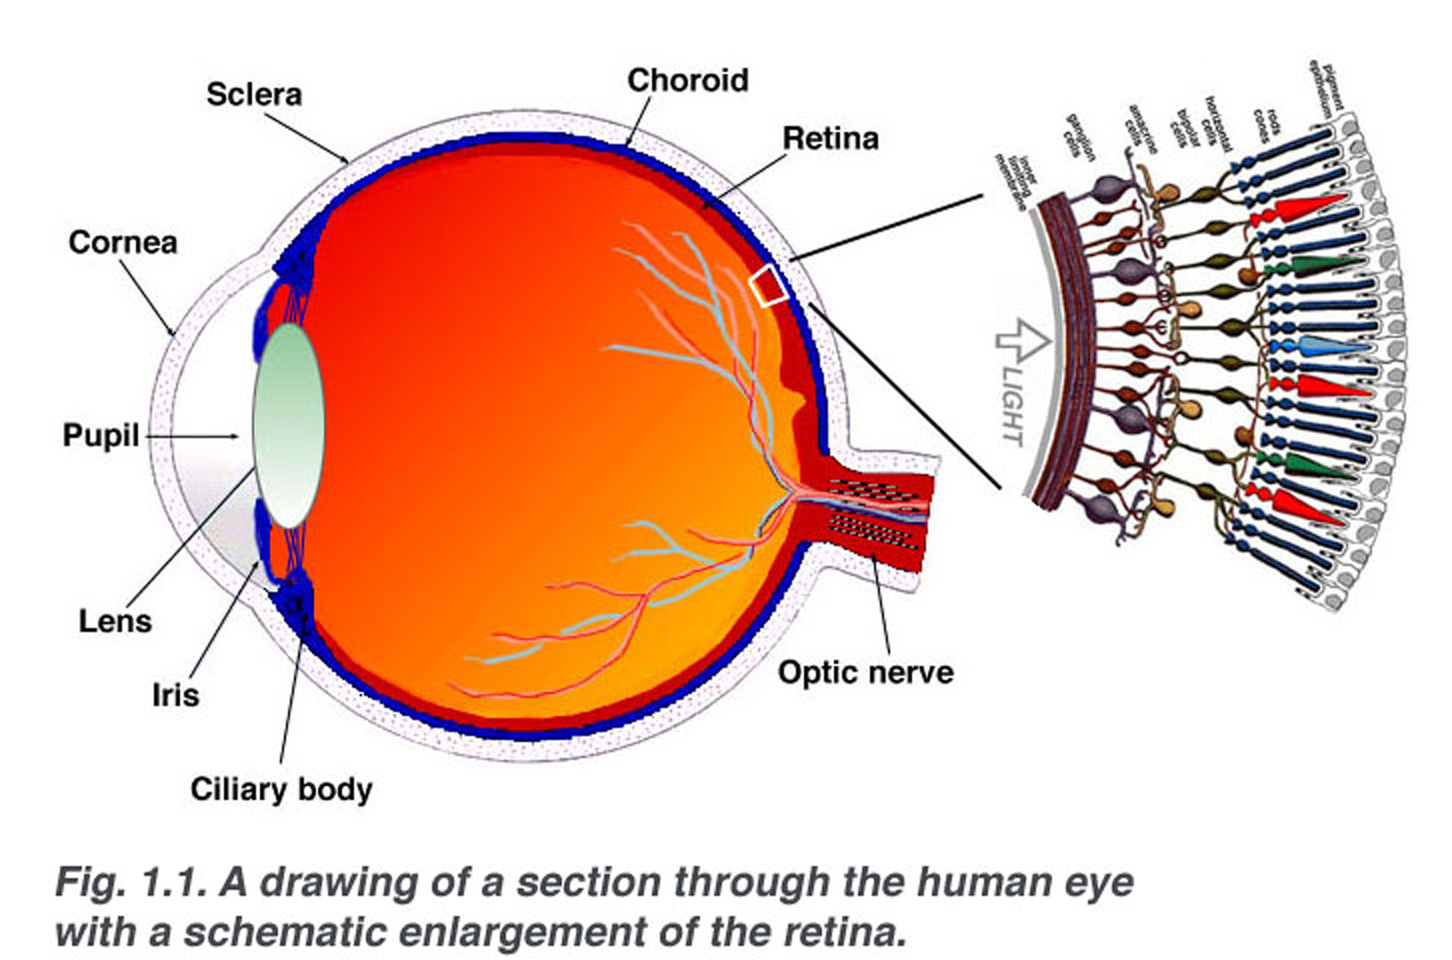 a schematic section through the human eye with a schematic enlargement of  the retina